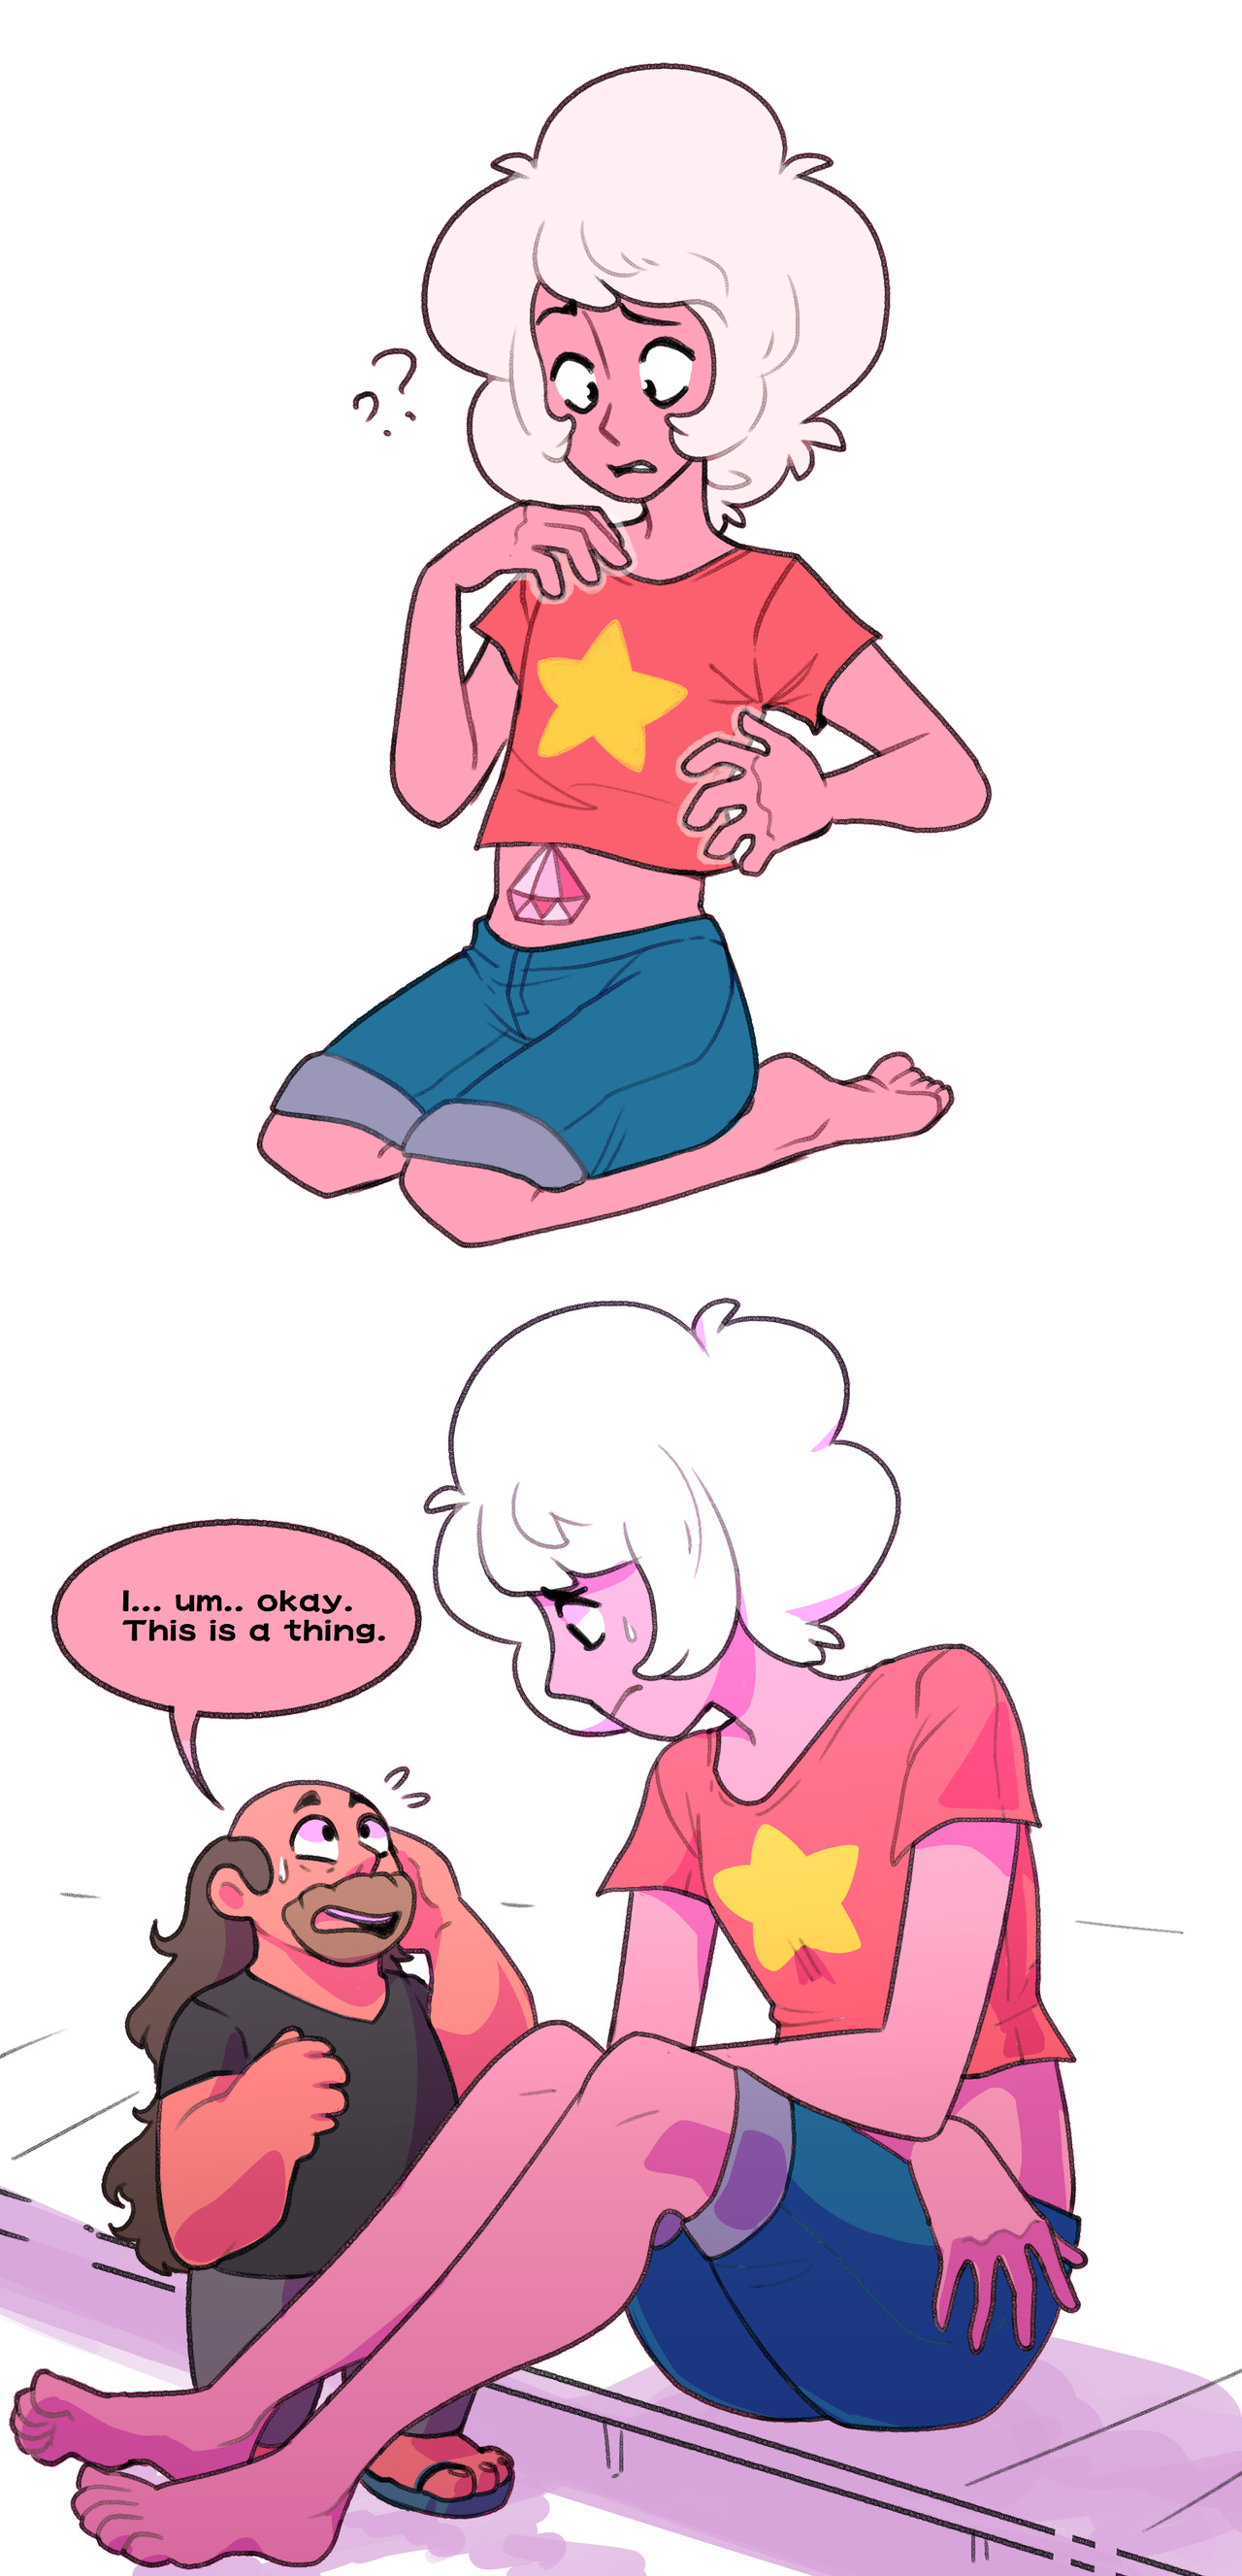 Before Change Your Mind aired I thought of an AU where